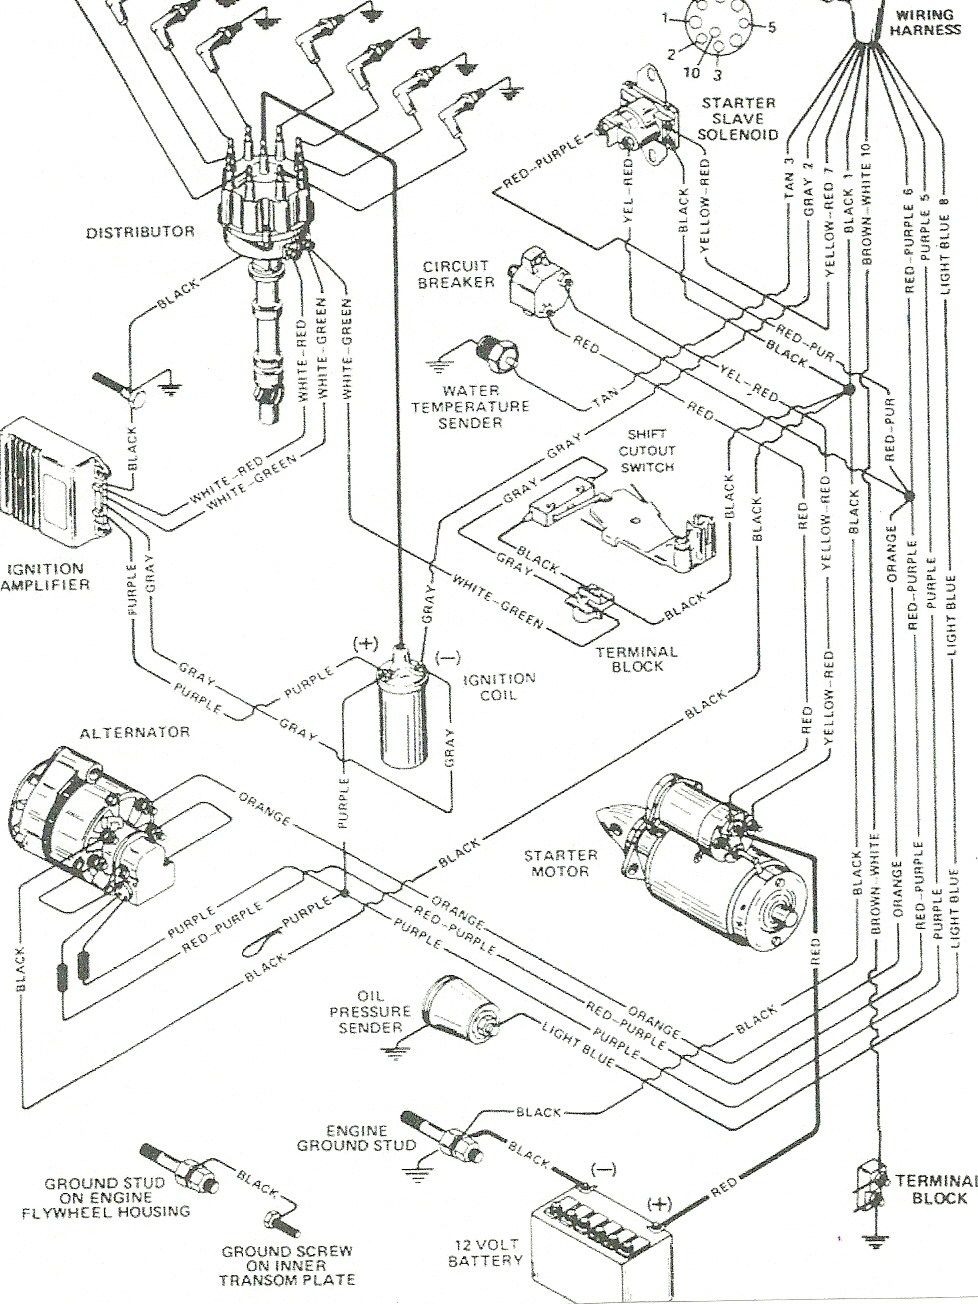 Mercruiser 30 Wiring Diagram Wiring Diagram Electrical Diagram Diagram Engineering